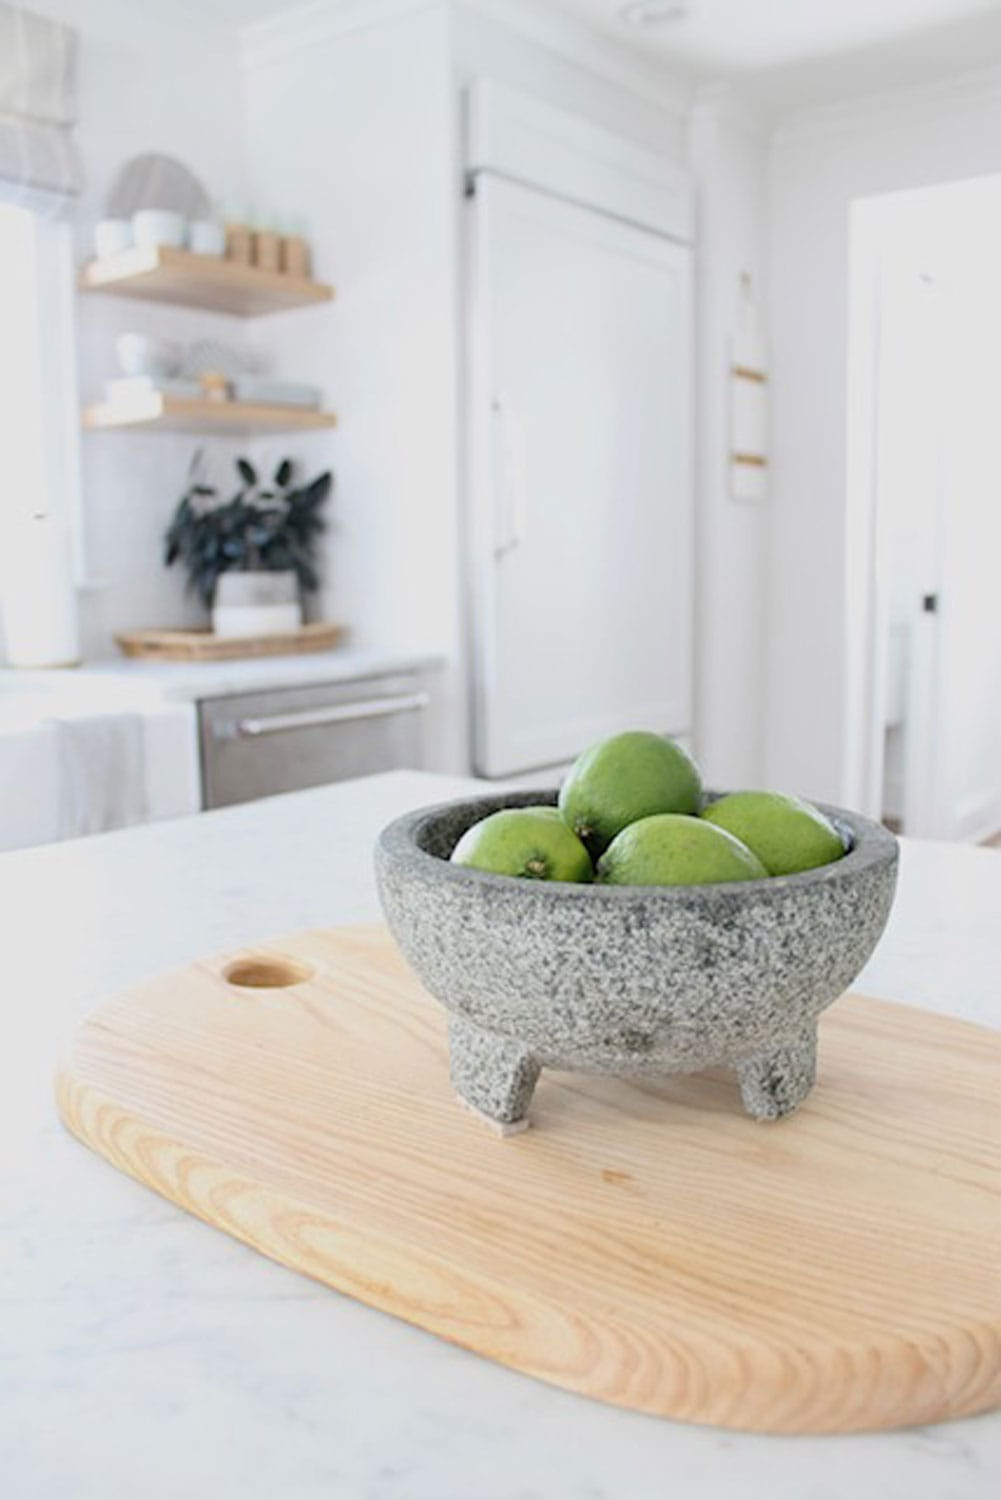 apples in stone bowl on wood ciutting board in white kitchen